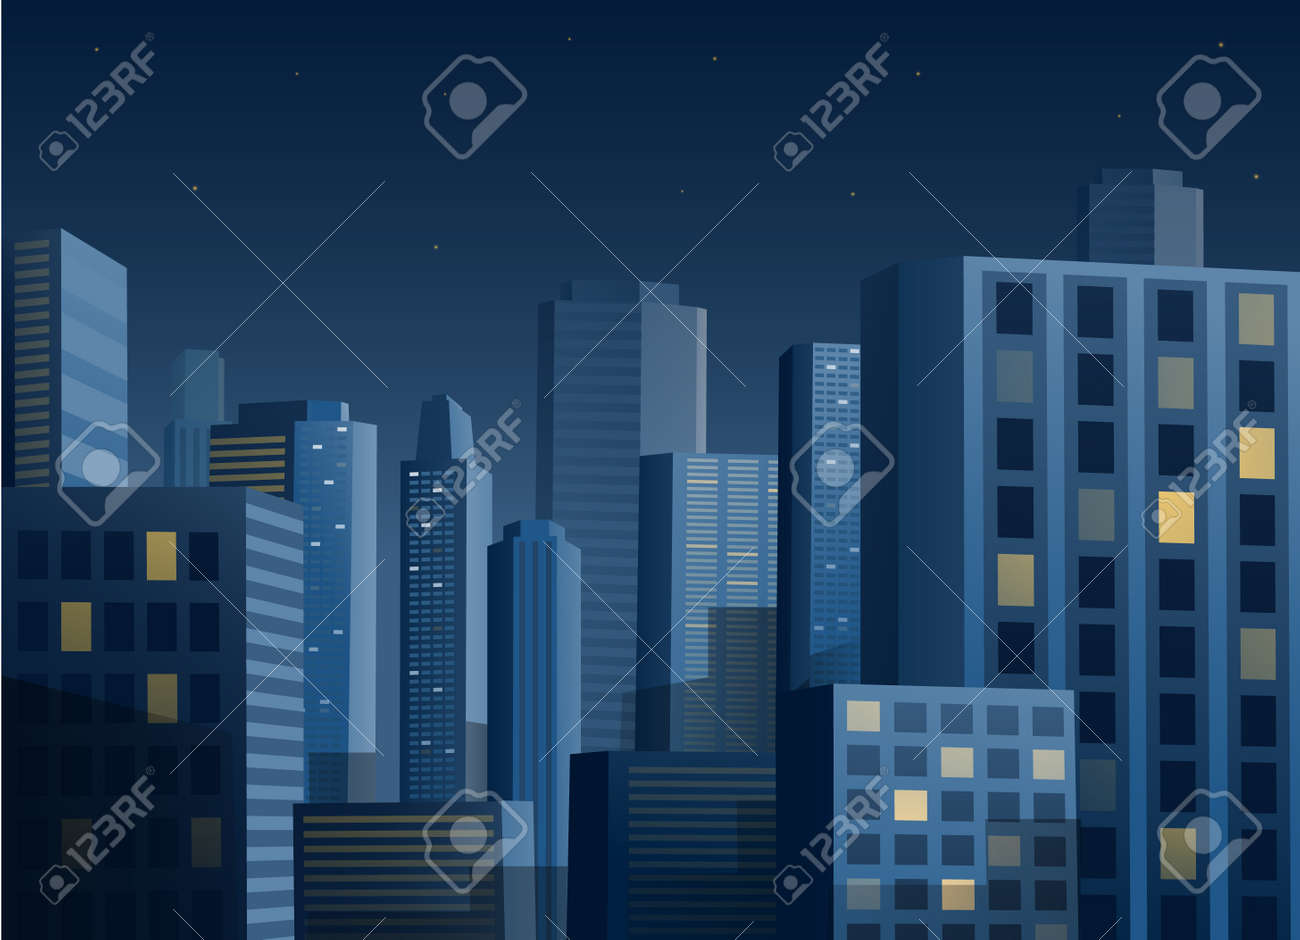 Cityscape at night vector illustration background - 39766704